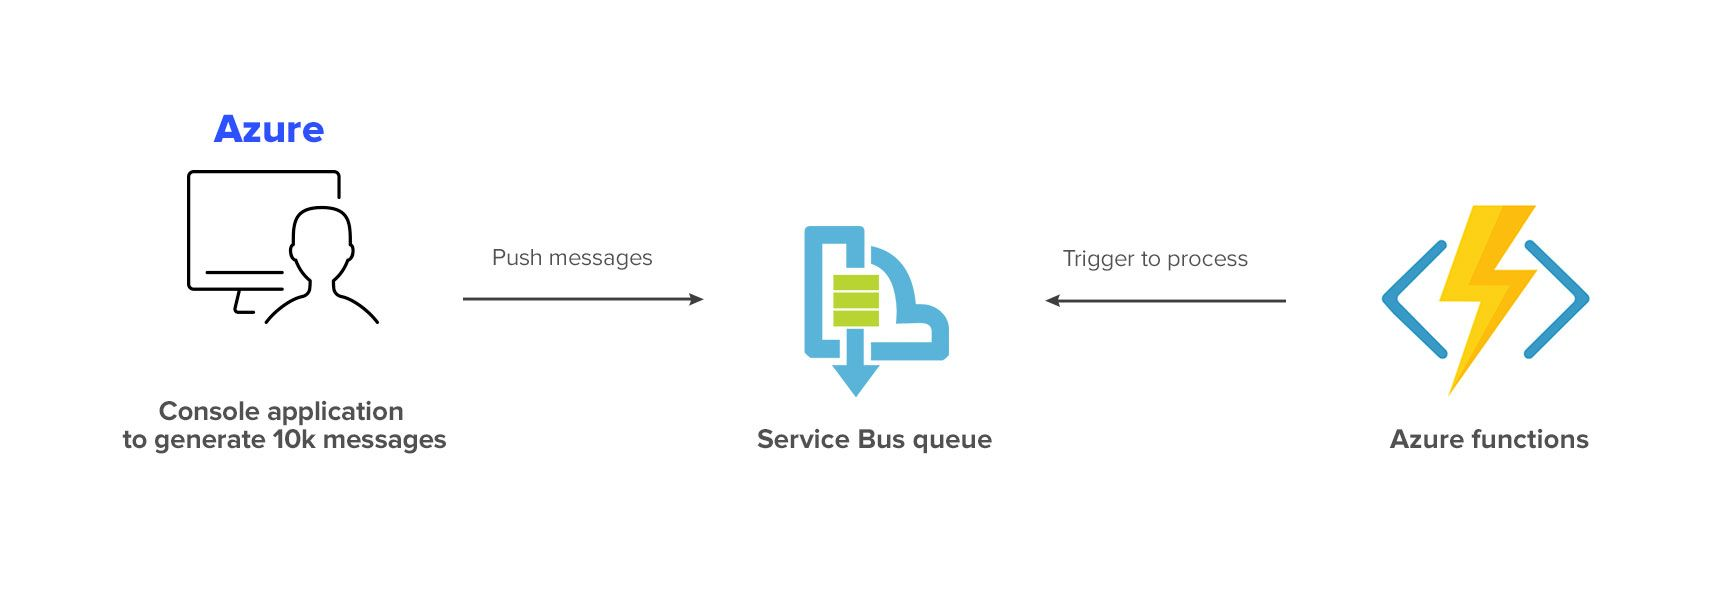 Azure Vs Aws Comparison Which Works Best For Serverless Architecture Eleks Labs